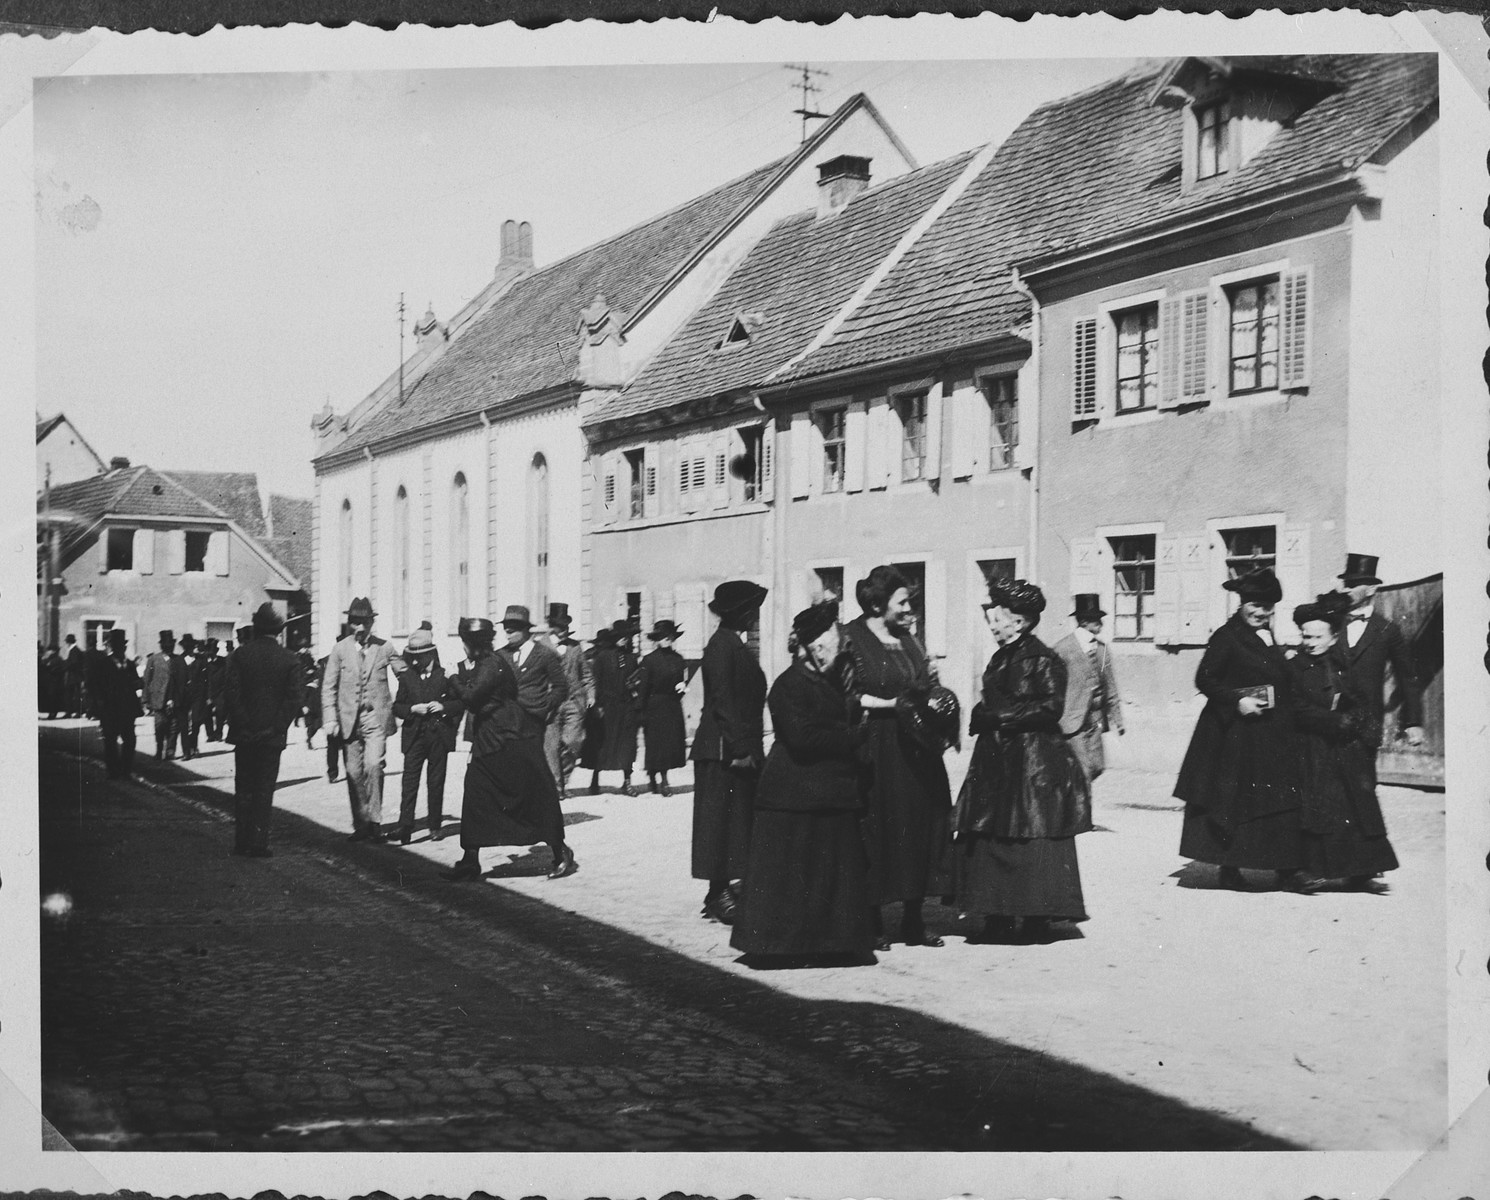 German Jews congregate on the street outside the synagogue in Breisach after Saturday morning services.  Rosa Geismar (nee Uffenheimer) is third from the right.